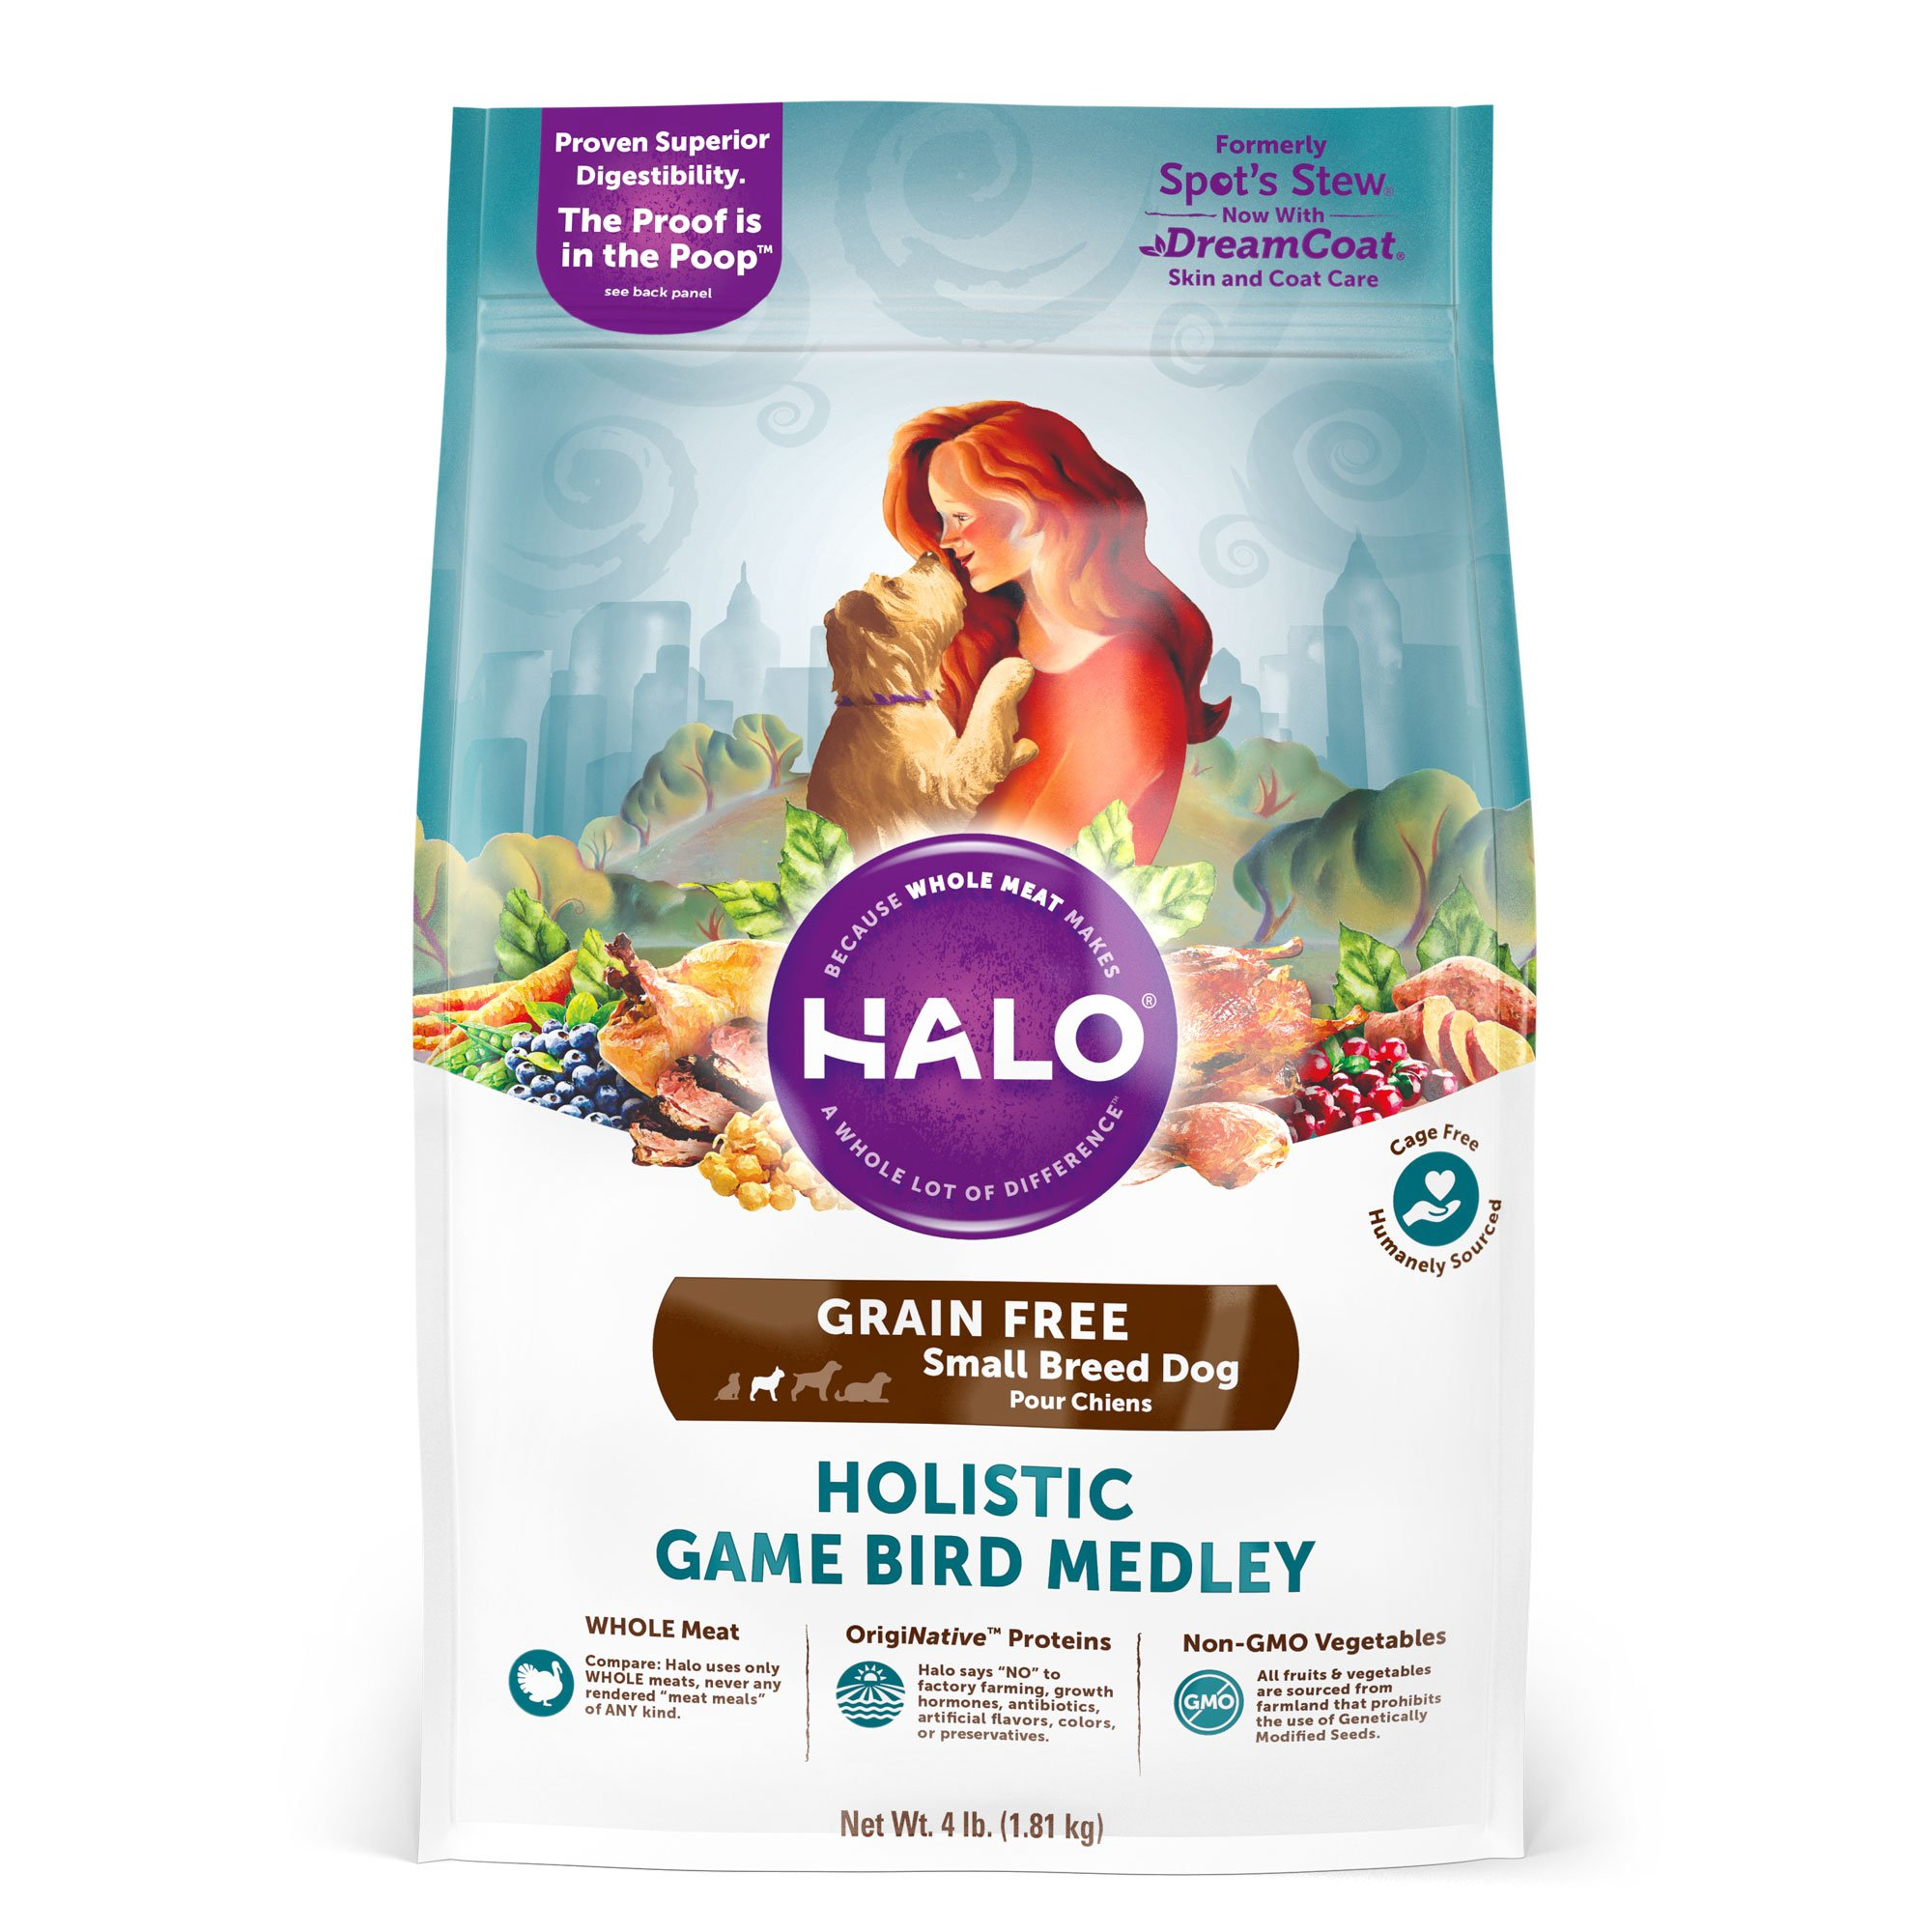 Halo Grain Free Natural Dry Dog Food, Small Breed Game Bird Medley, 4-Pound Bag by Halo, Purely For Pets (Image #1)